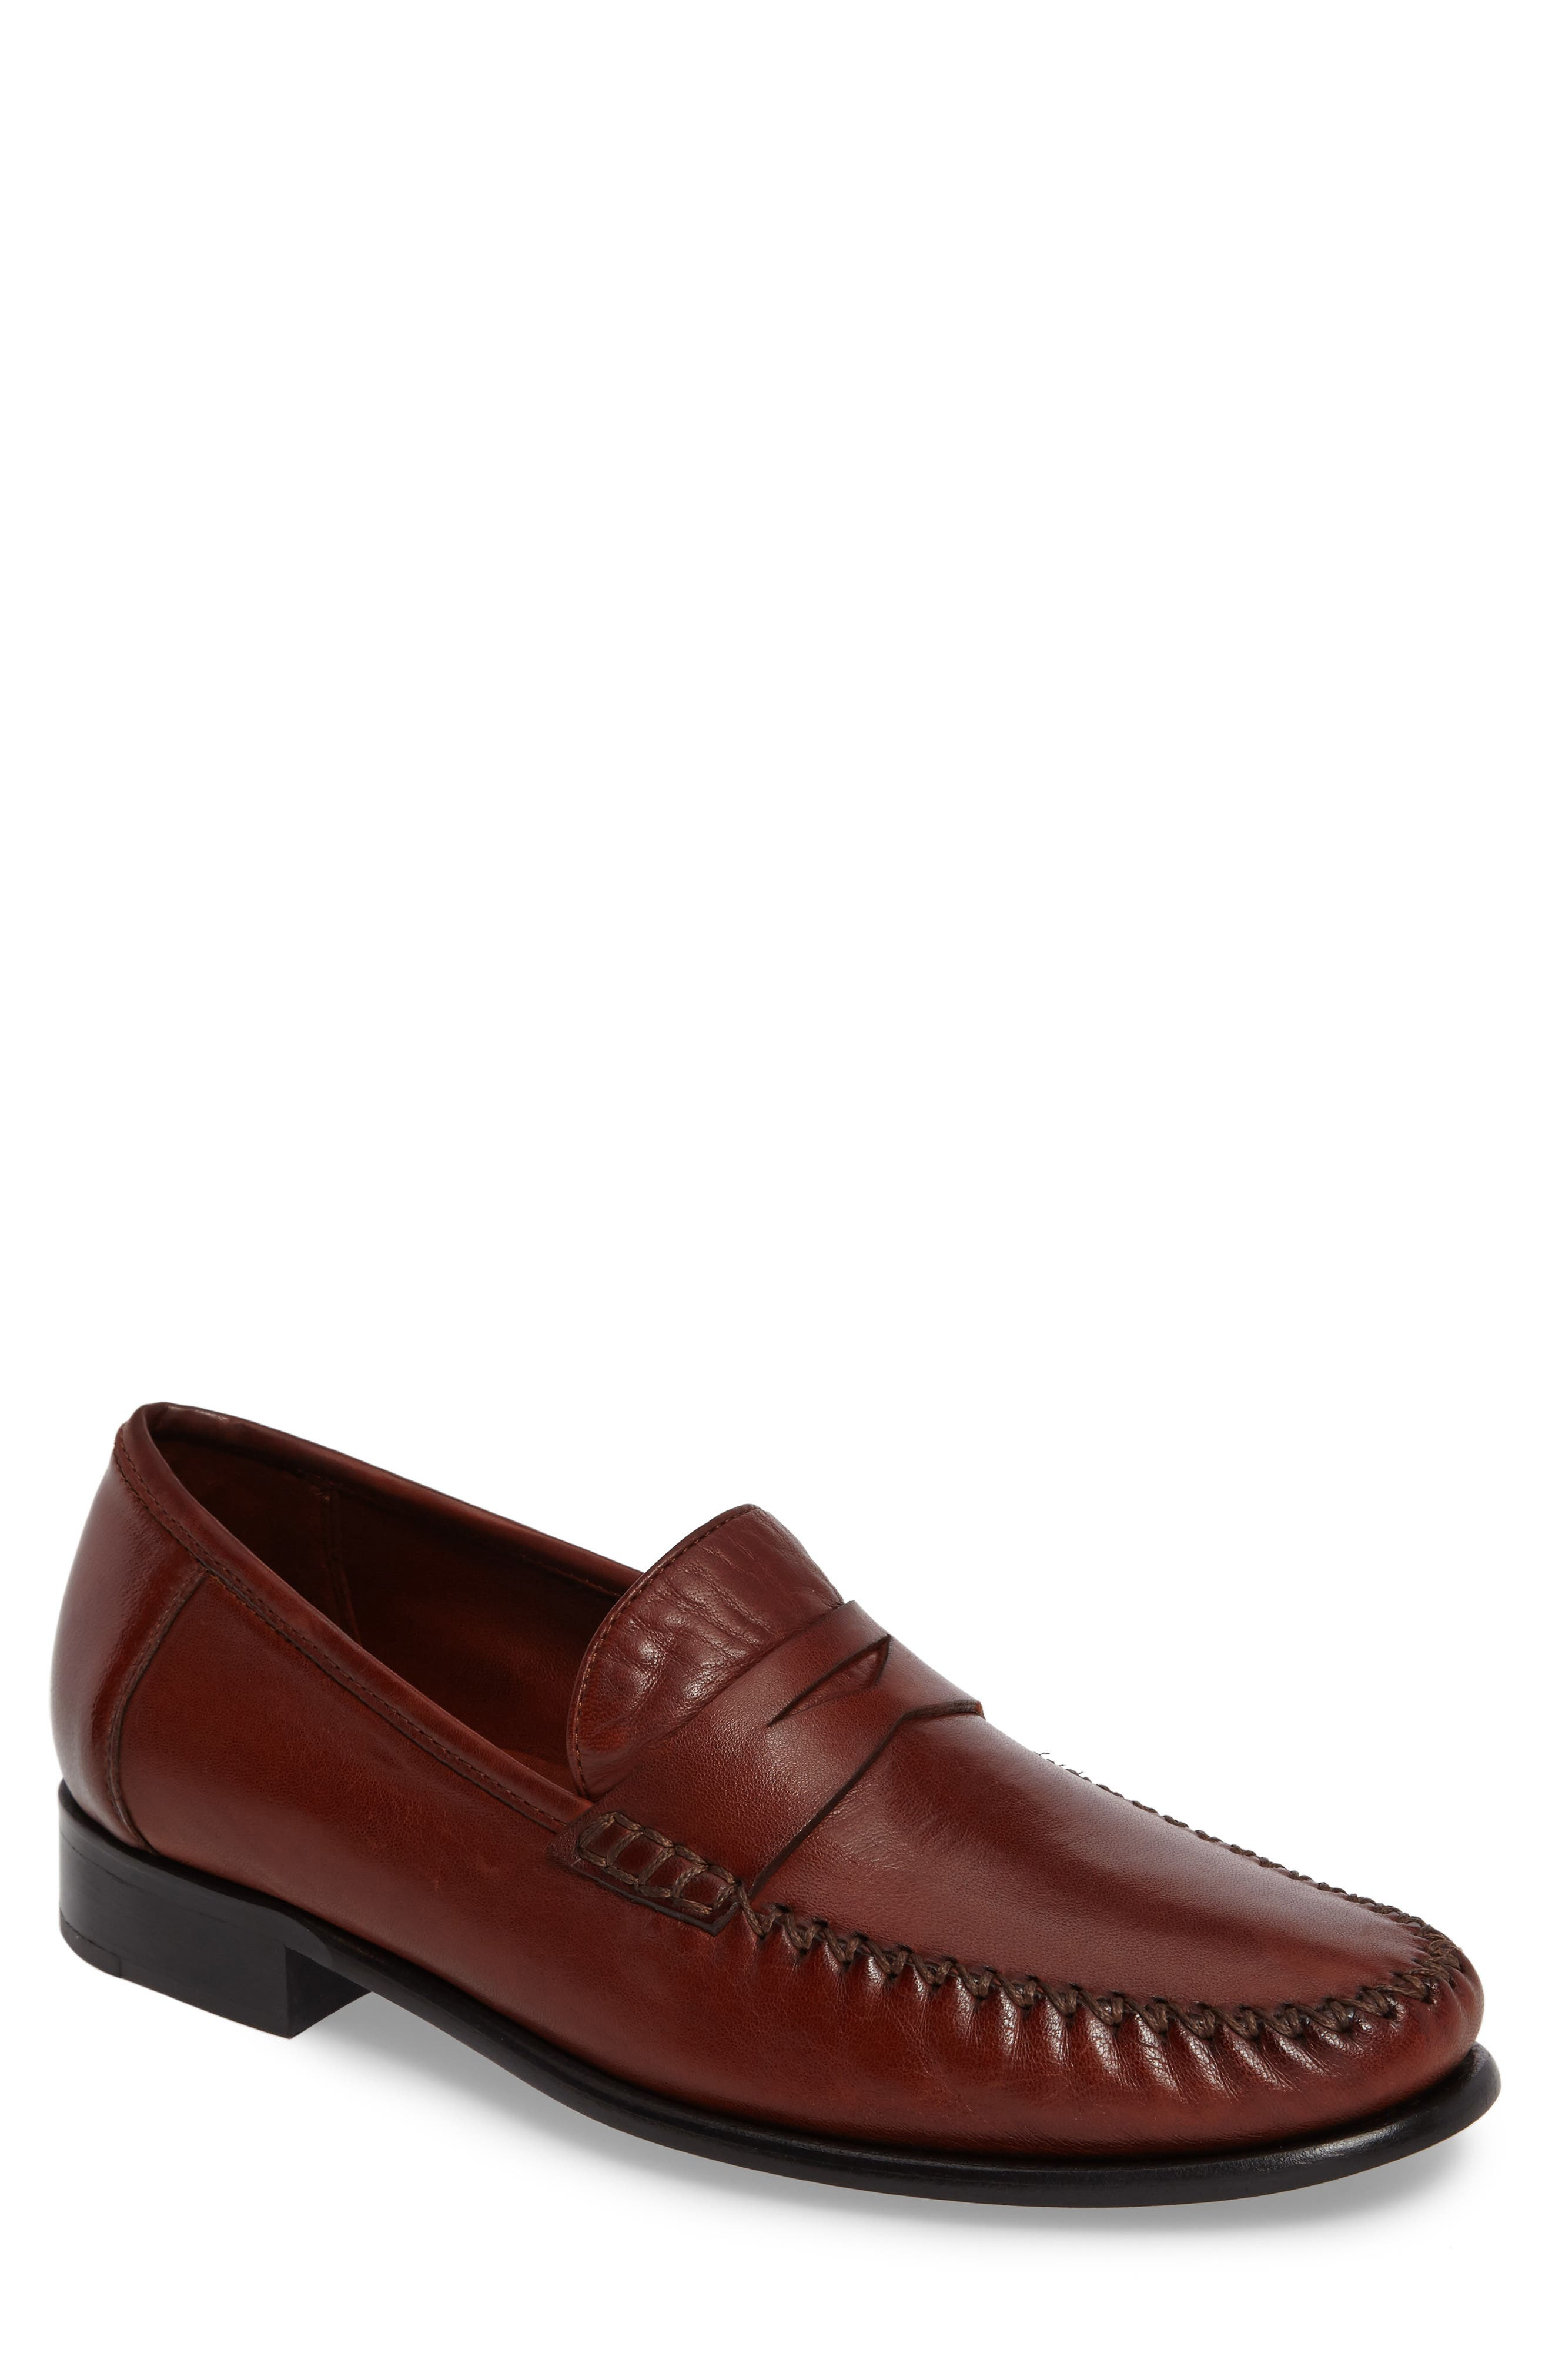 Penny Loafer,                         Main,                         color, DARK LUGGAGE LEATHER